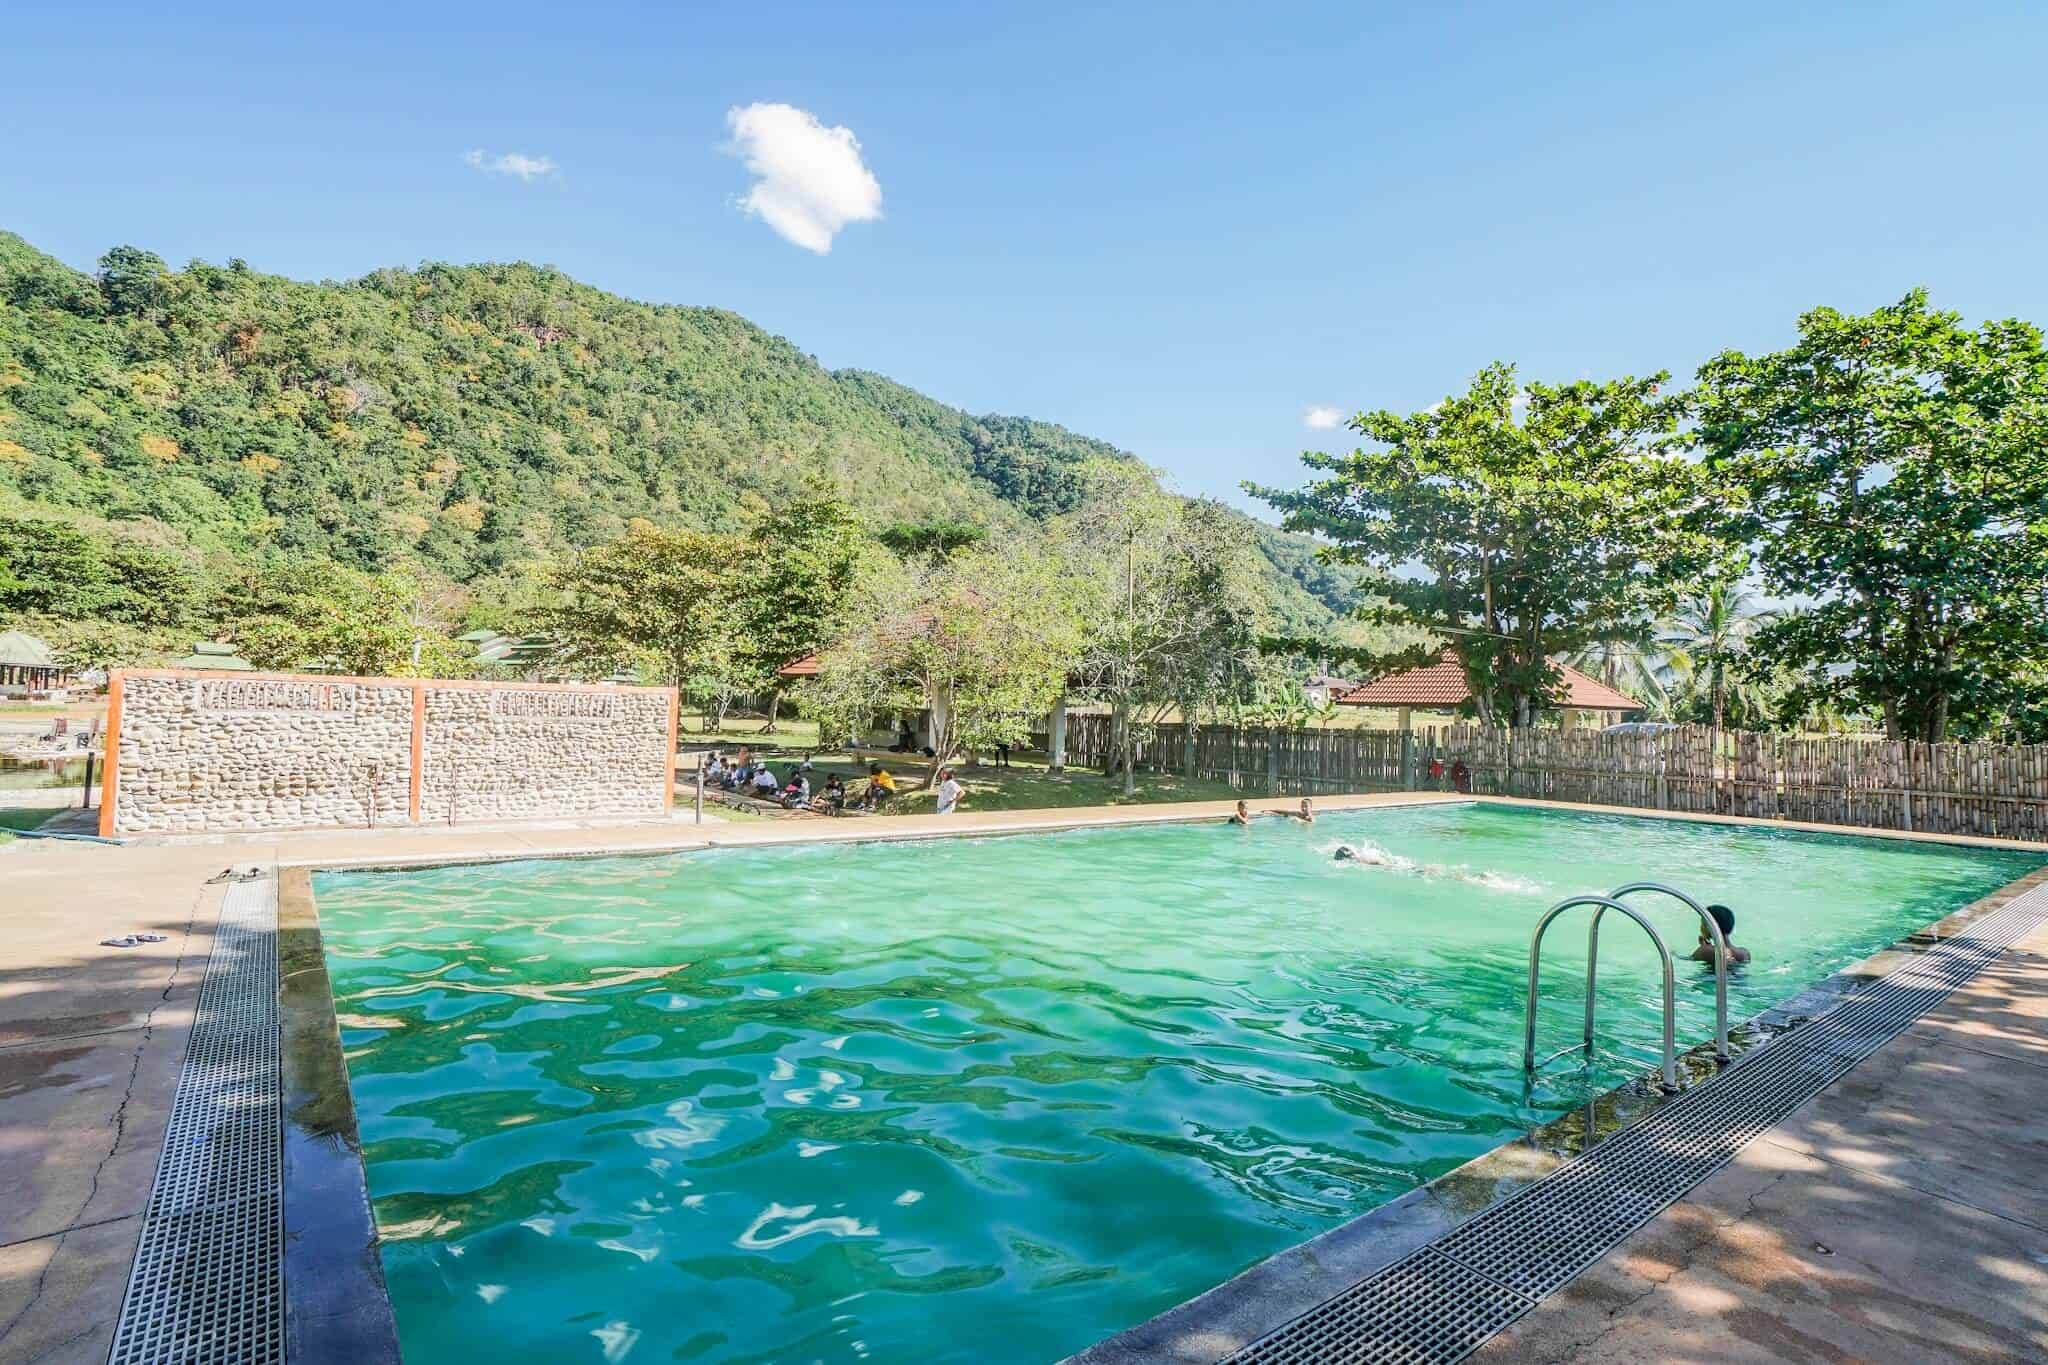 Pha Bong Hot Springs Mae Hong Son